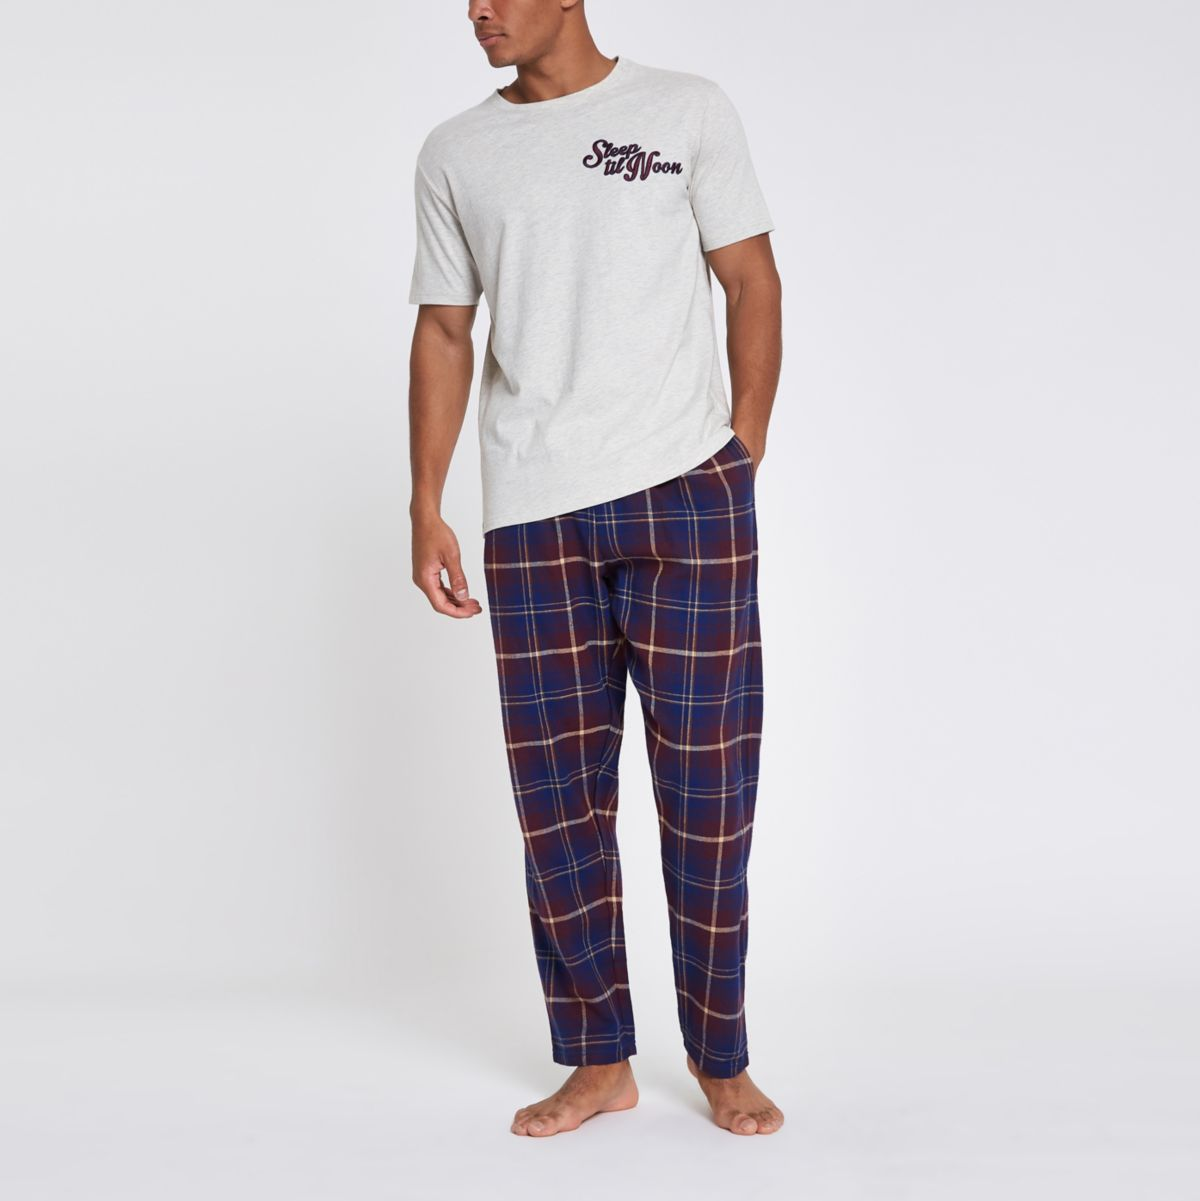 Grey 'sleep til noon' plaid check pajama set